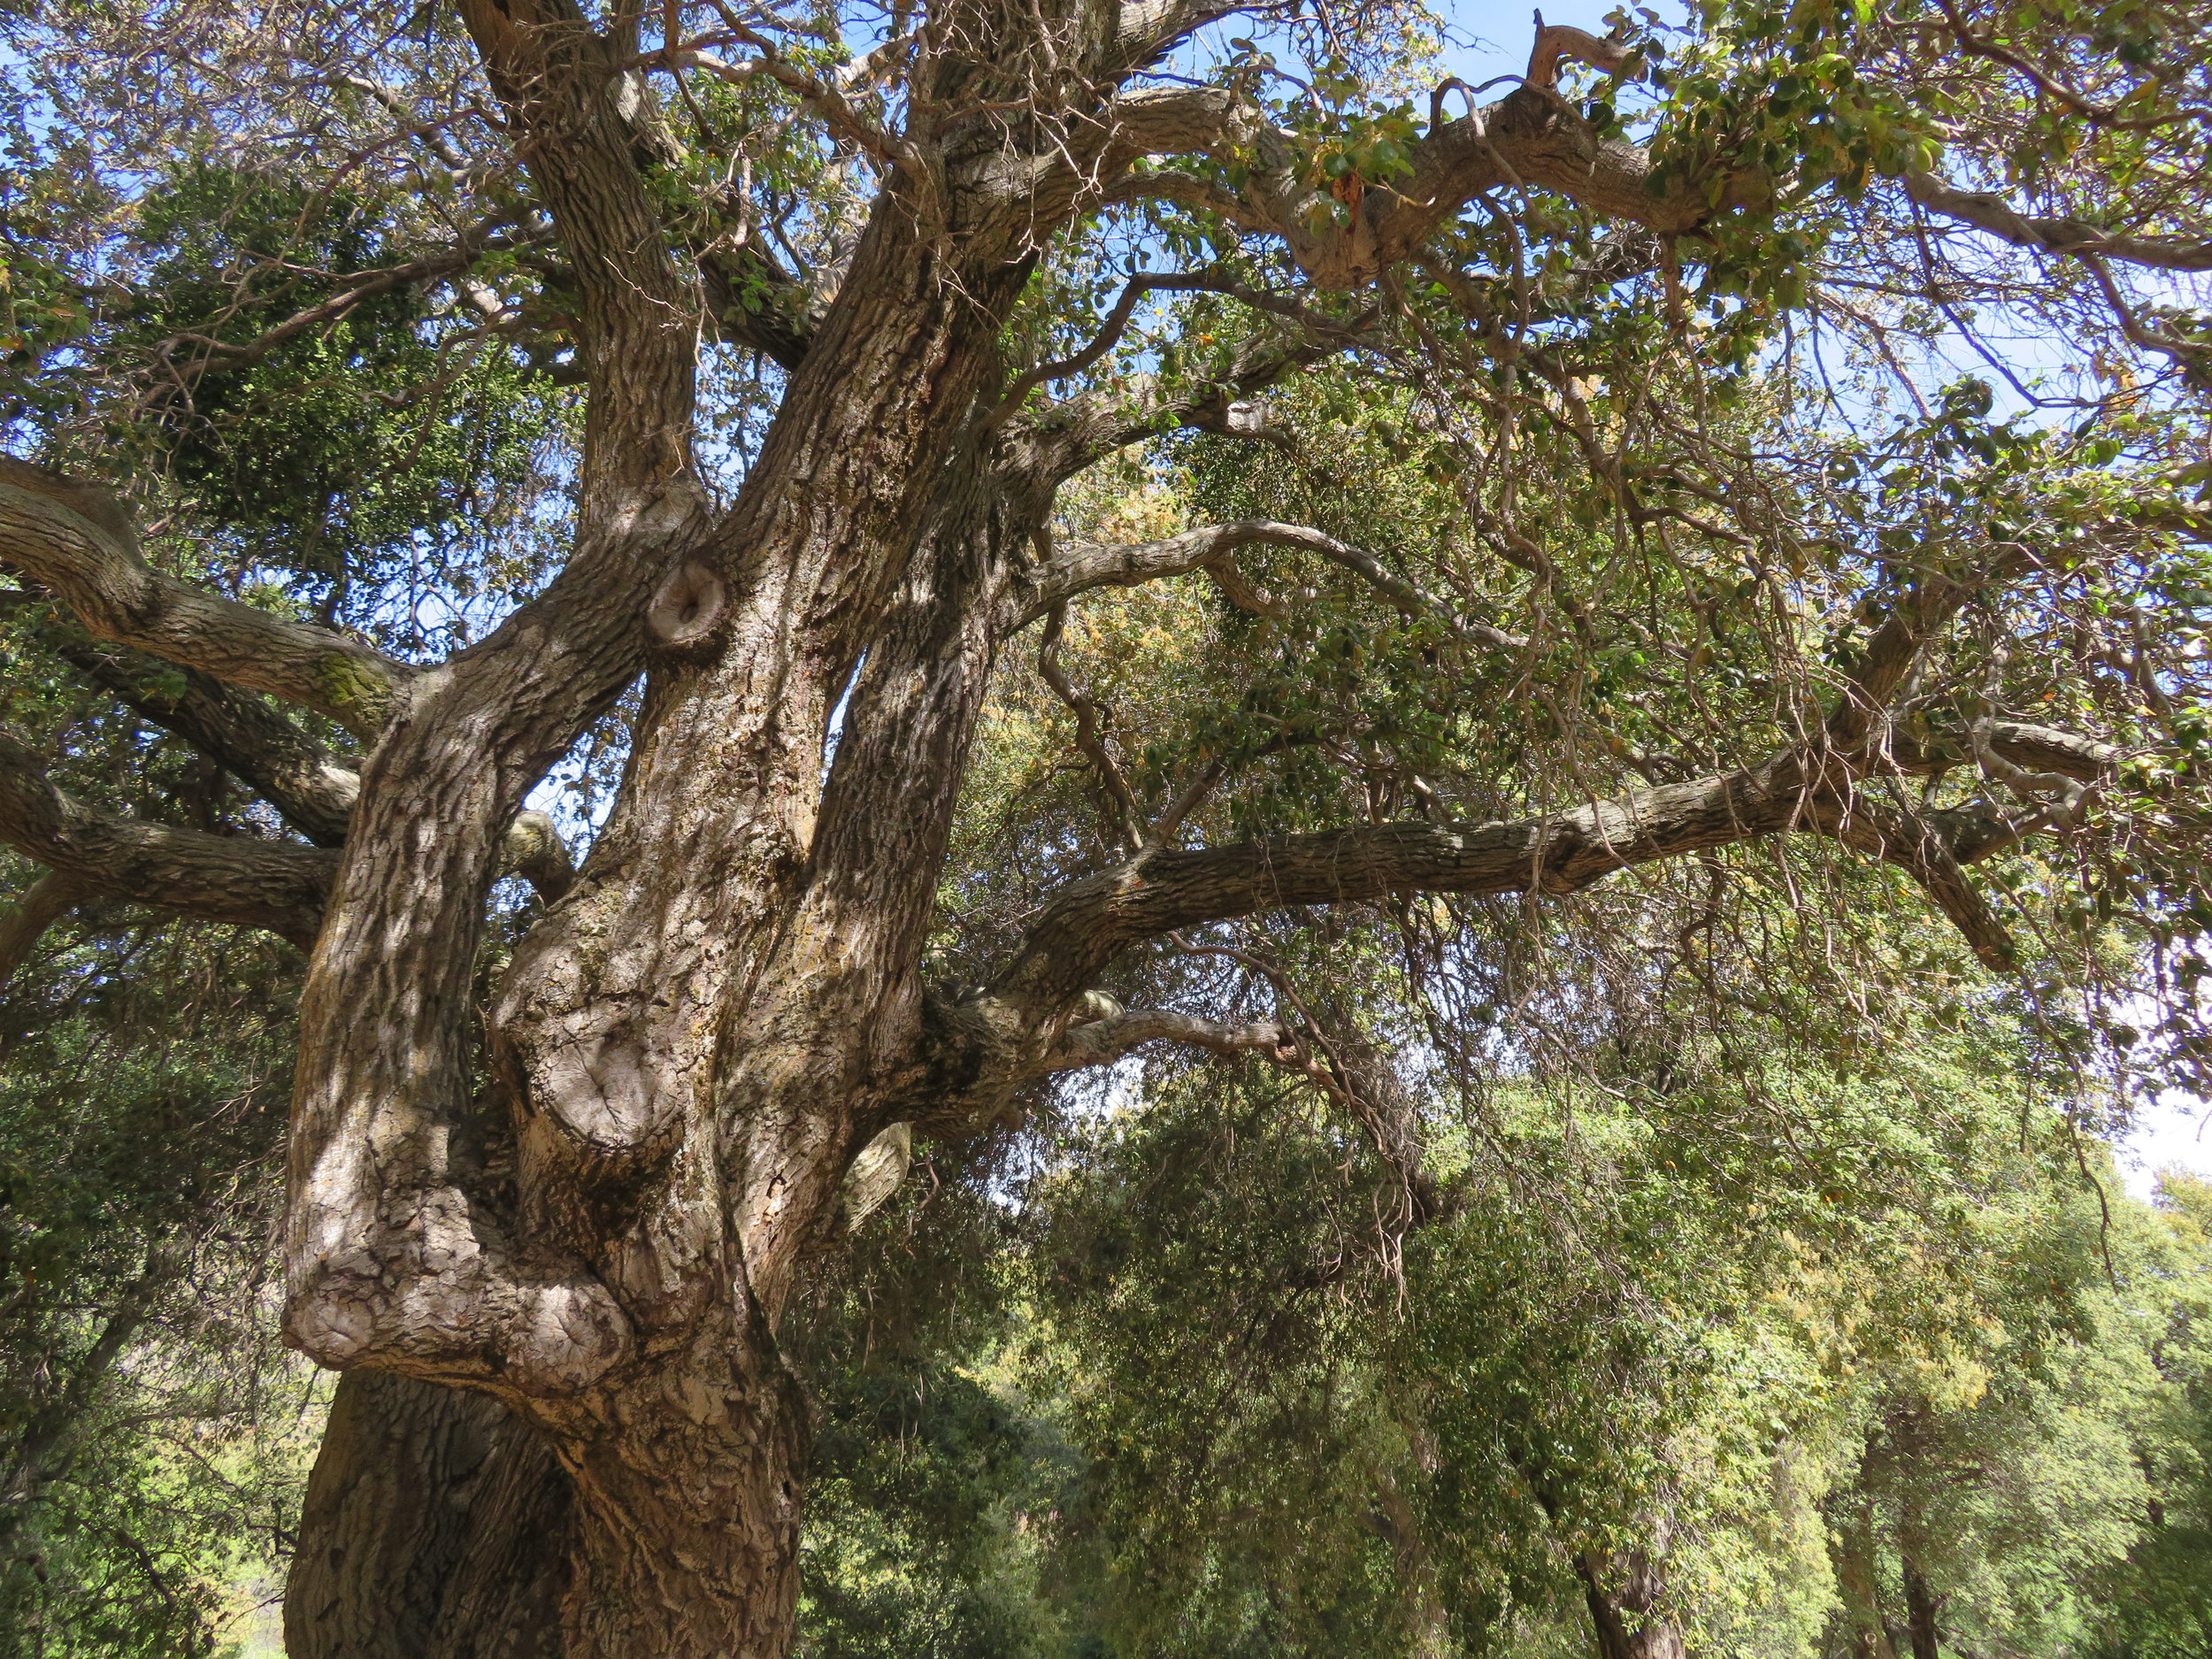 Coast live oak at Cibbet Flats Campground estimated to be ~350 years old.